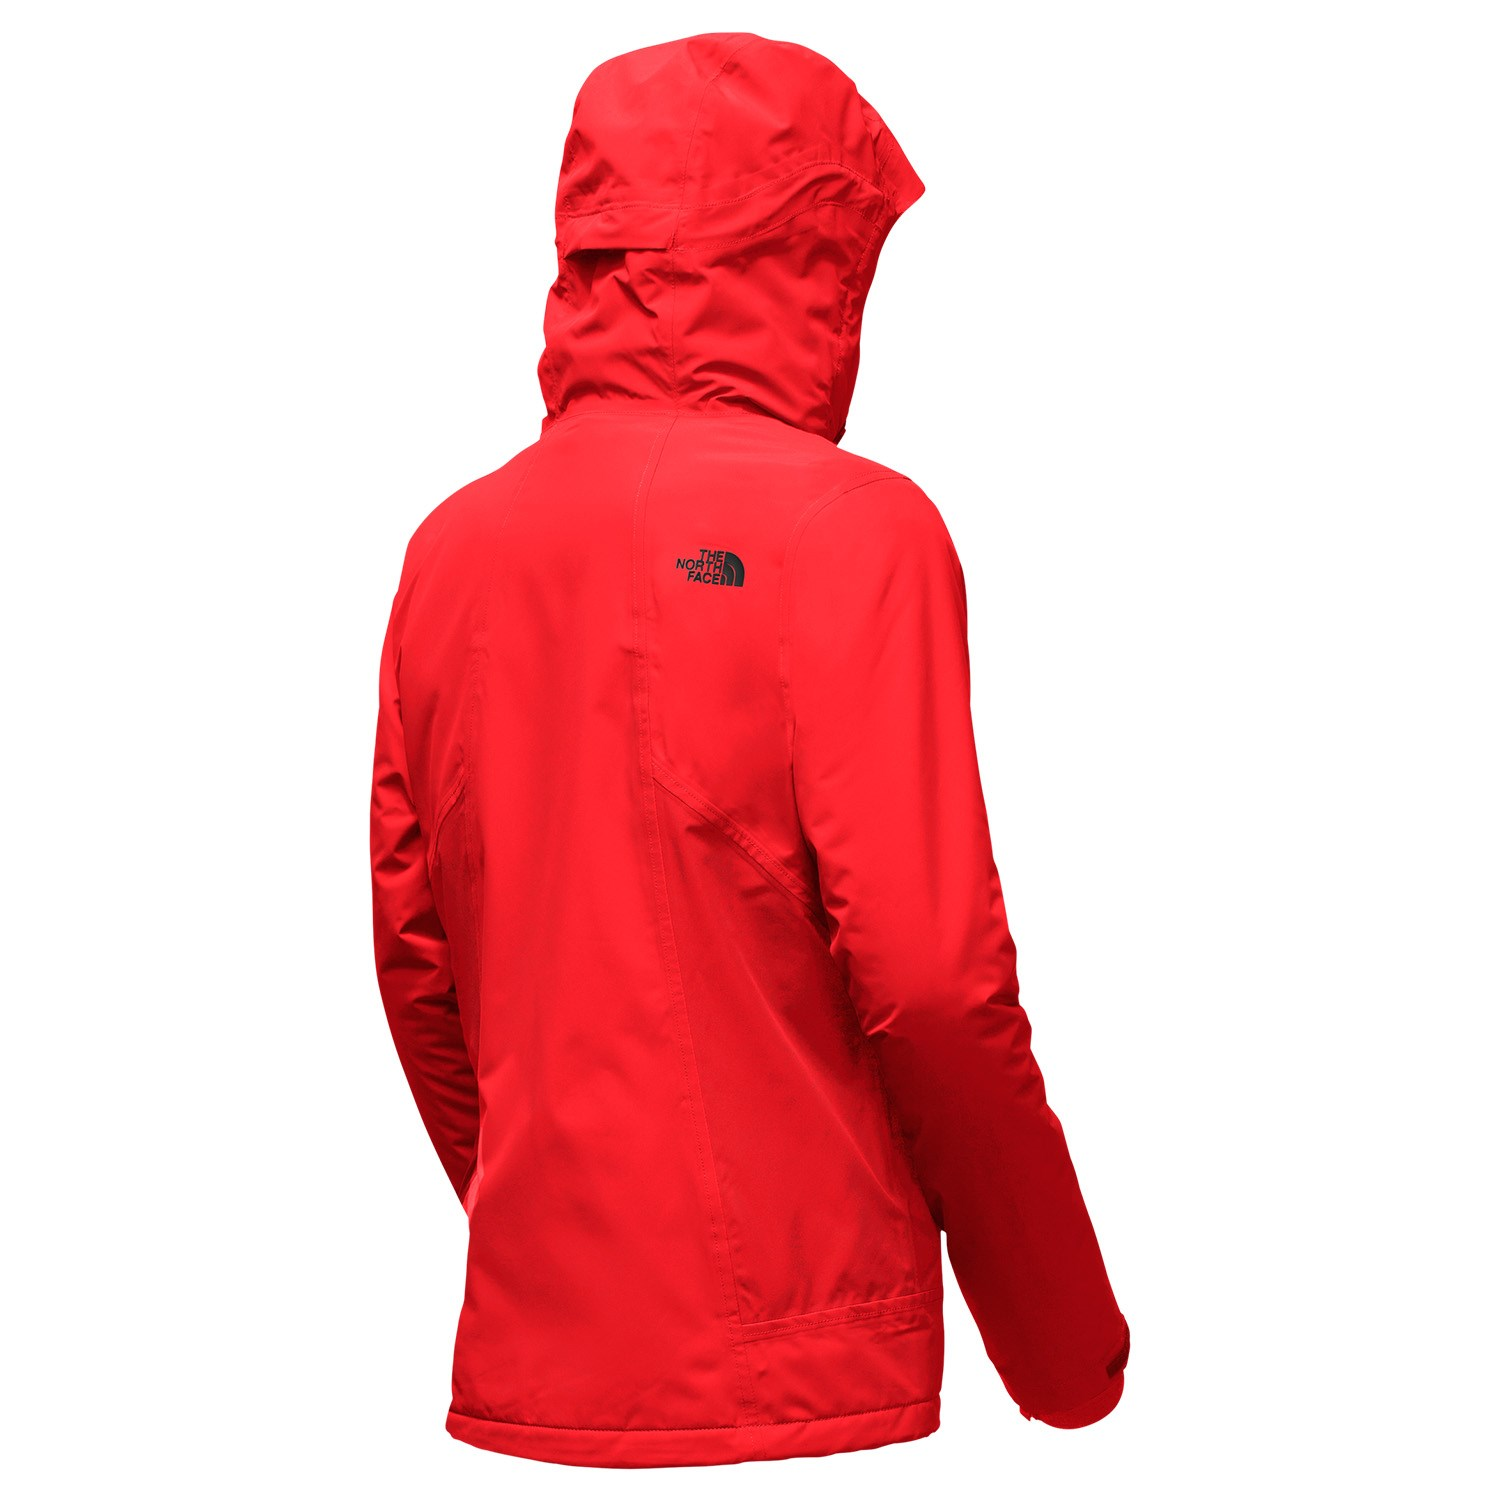 f23171c571d1 The North Face Highanddry Triclimate Jacket - Women s